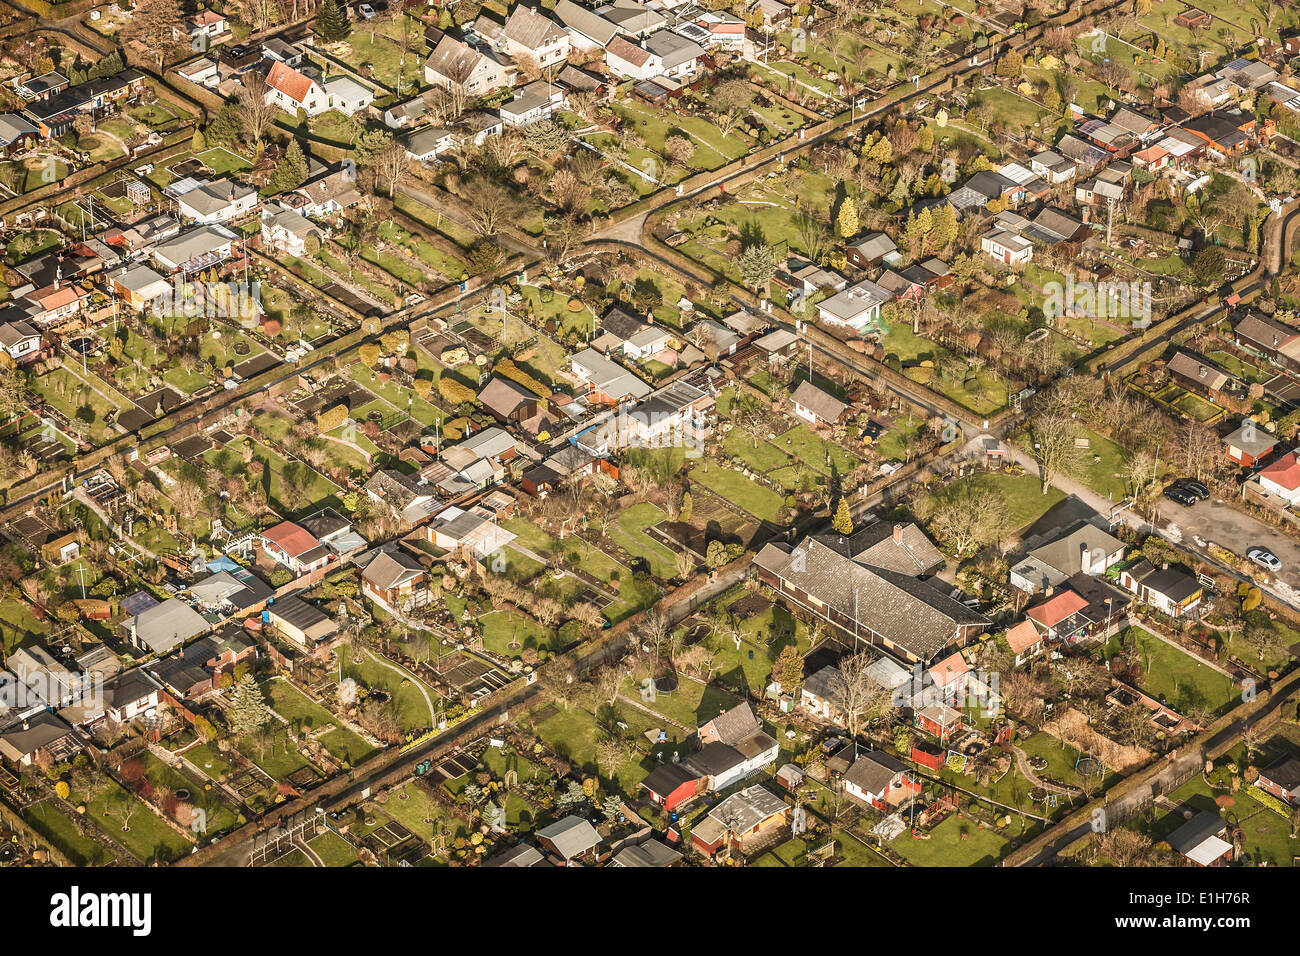 Aerial view of gridded house and garden plots, Bremerhaven, Bremen, Germany - Stock Image